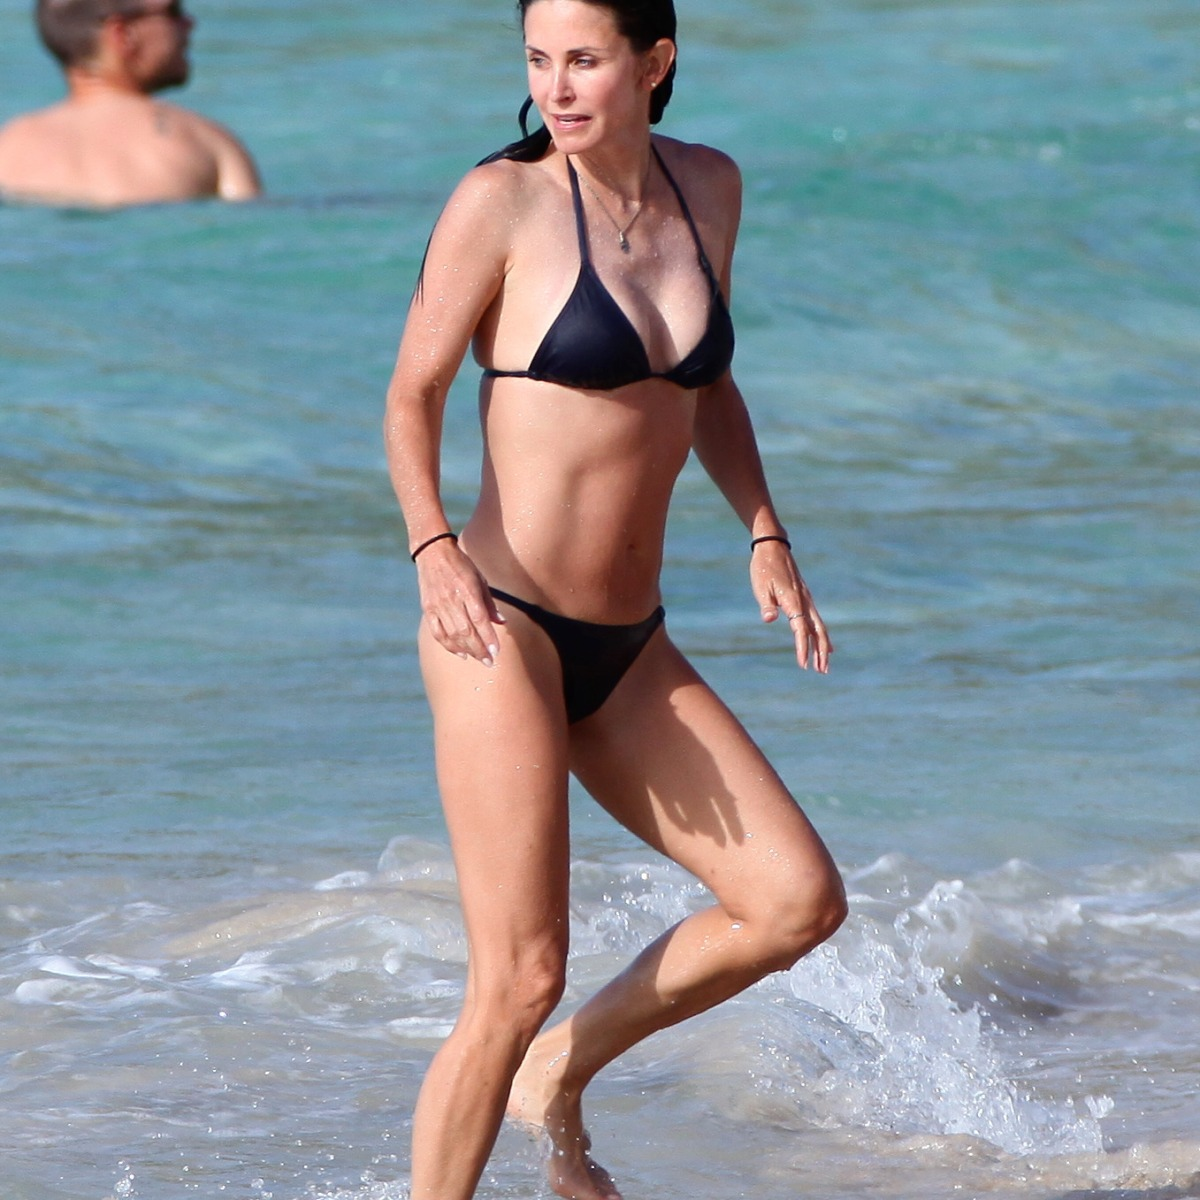 eddbb4aa692 Reese Witherspoon Shows Off Her Diving Skills in a Cheeky Bathing Suit —  See the Video! - Closer Weekly